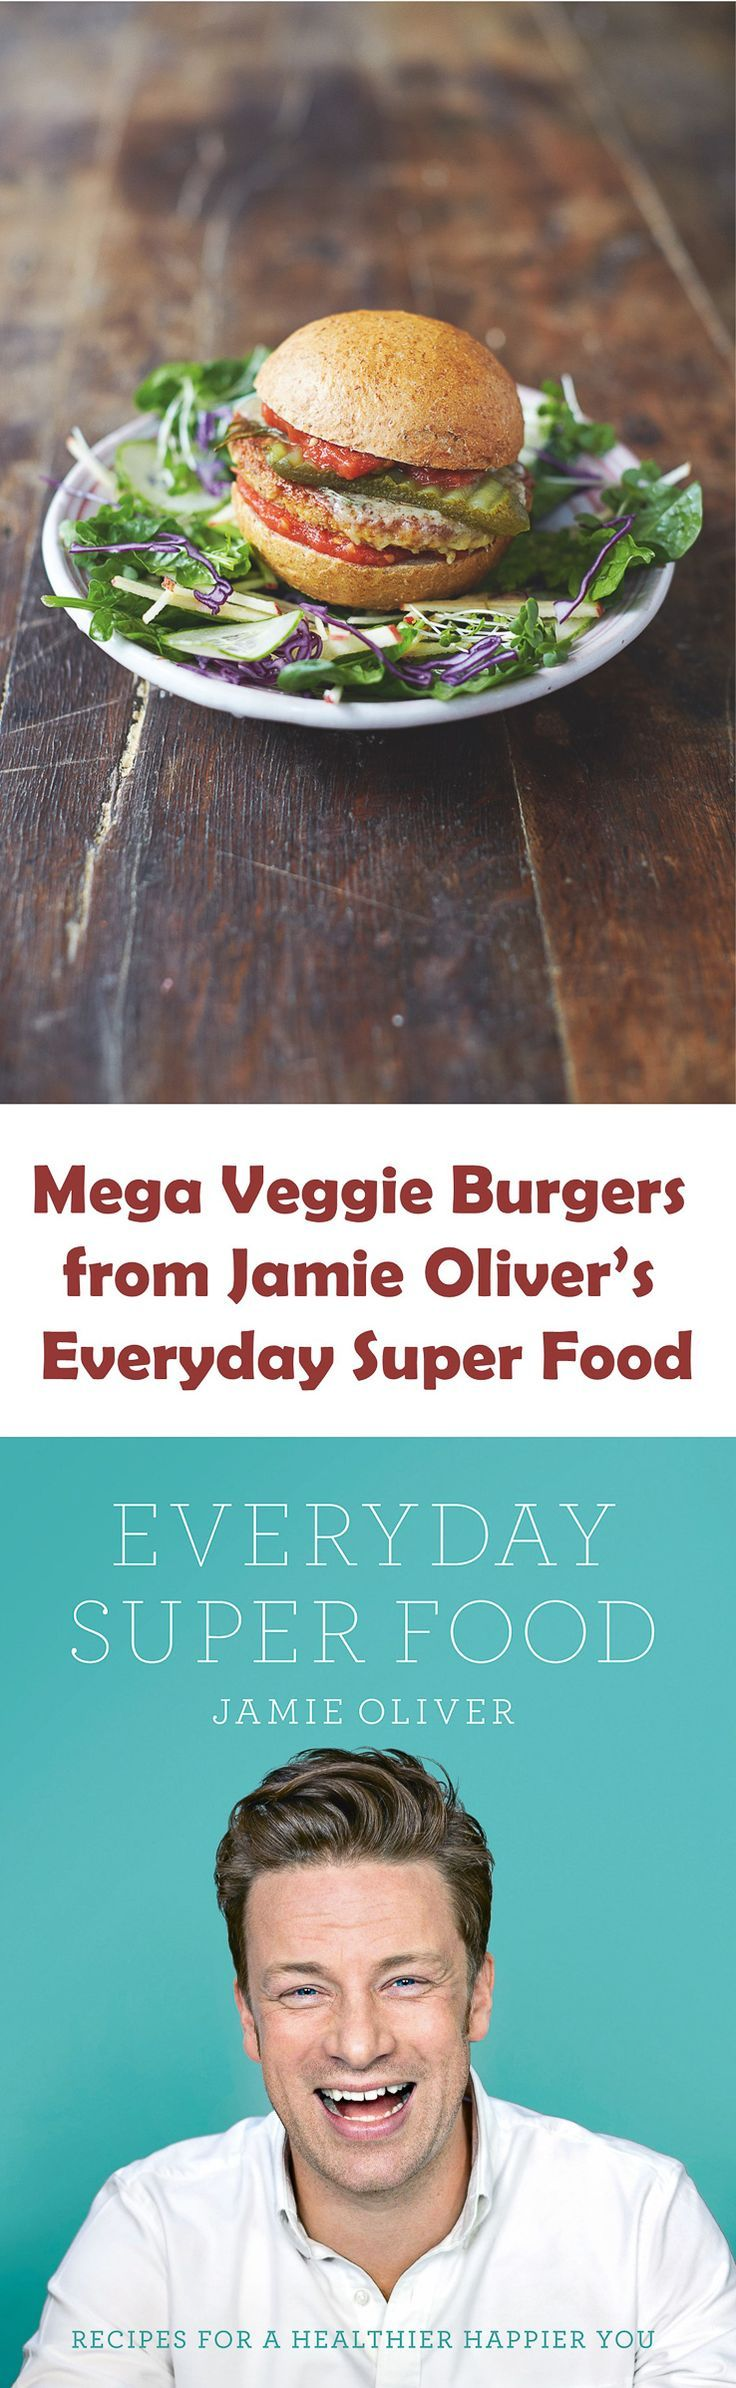 Mega veggie burgers from jamie olivers everyday super food recipe healthy mega veggie burgers from jamie olivers book everyday super food forumfinder Choice Image